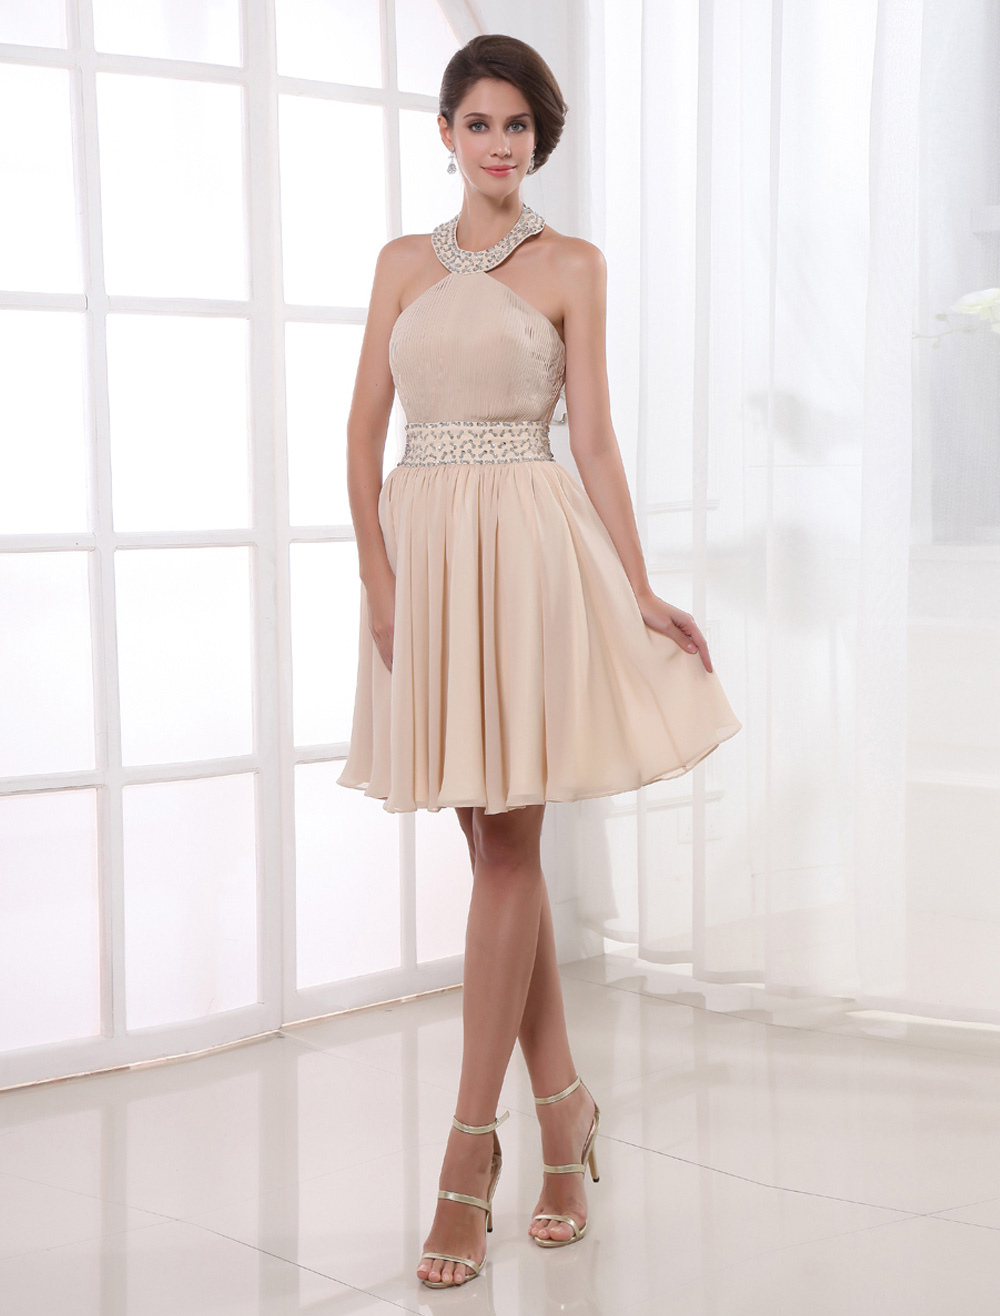 372052309ed9de Halter Pleated Chiffon Cocktail Dress - Milanoo.com